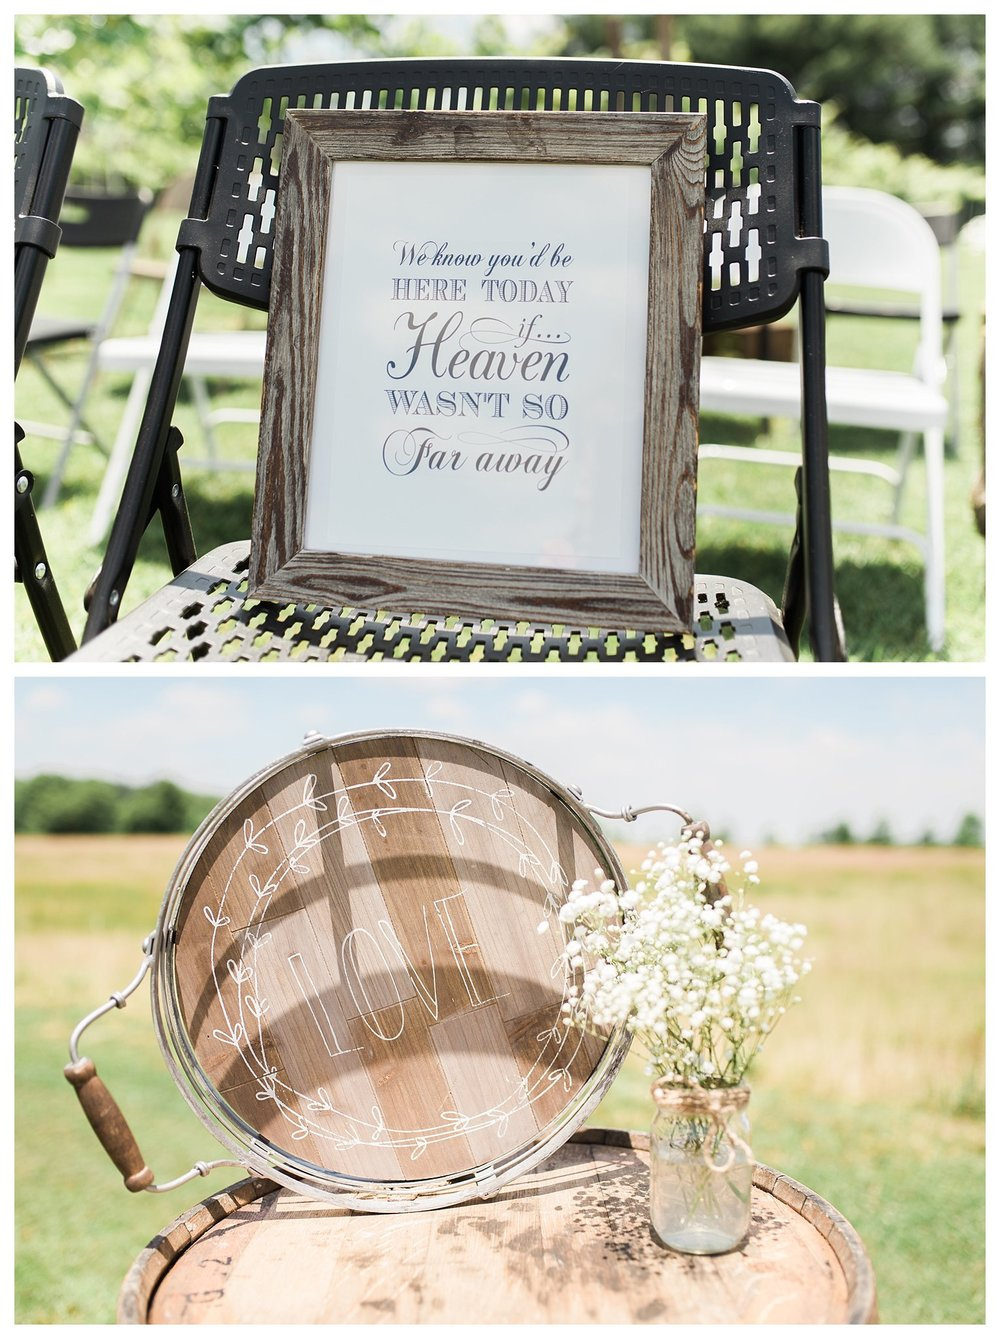 everleigh-photography.-cincinnati-wedding-photographer-at-the-barn-winery-04